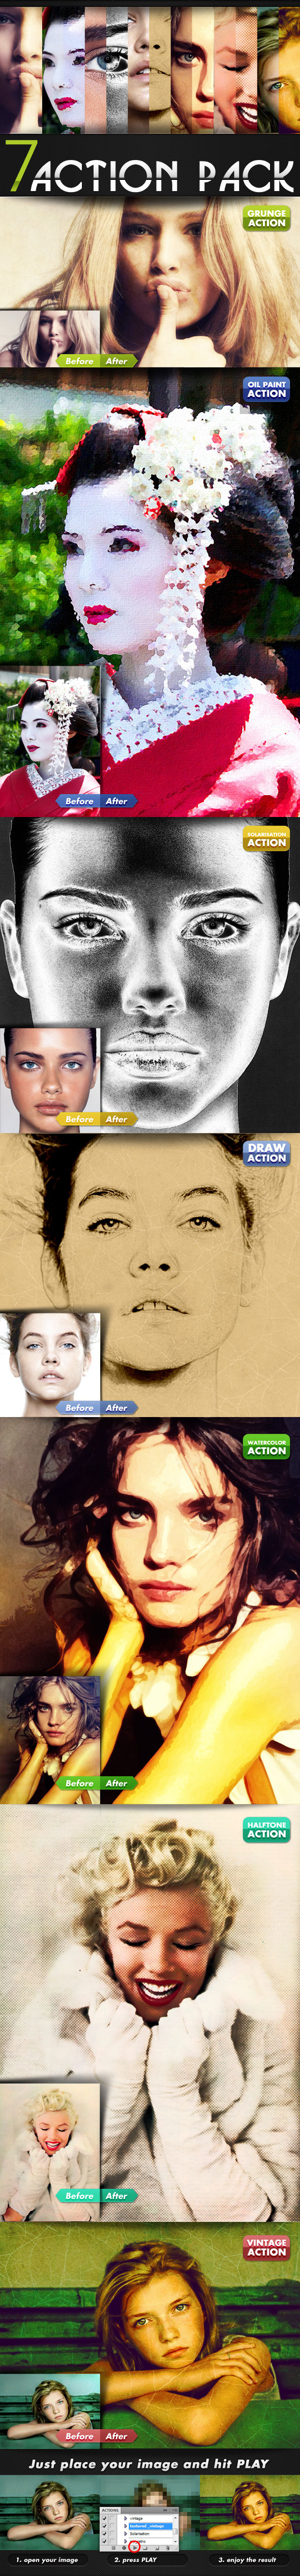 Photoshop Action Pack - Actions Photoshop